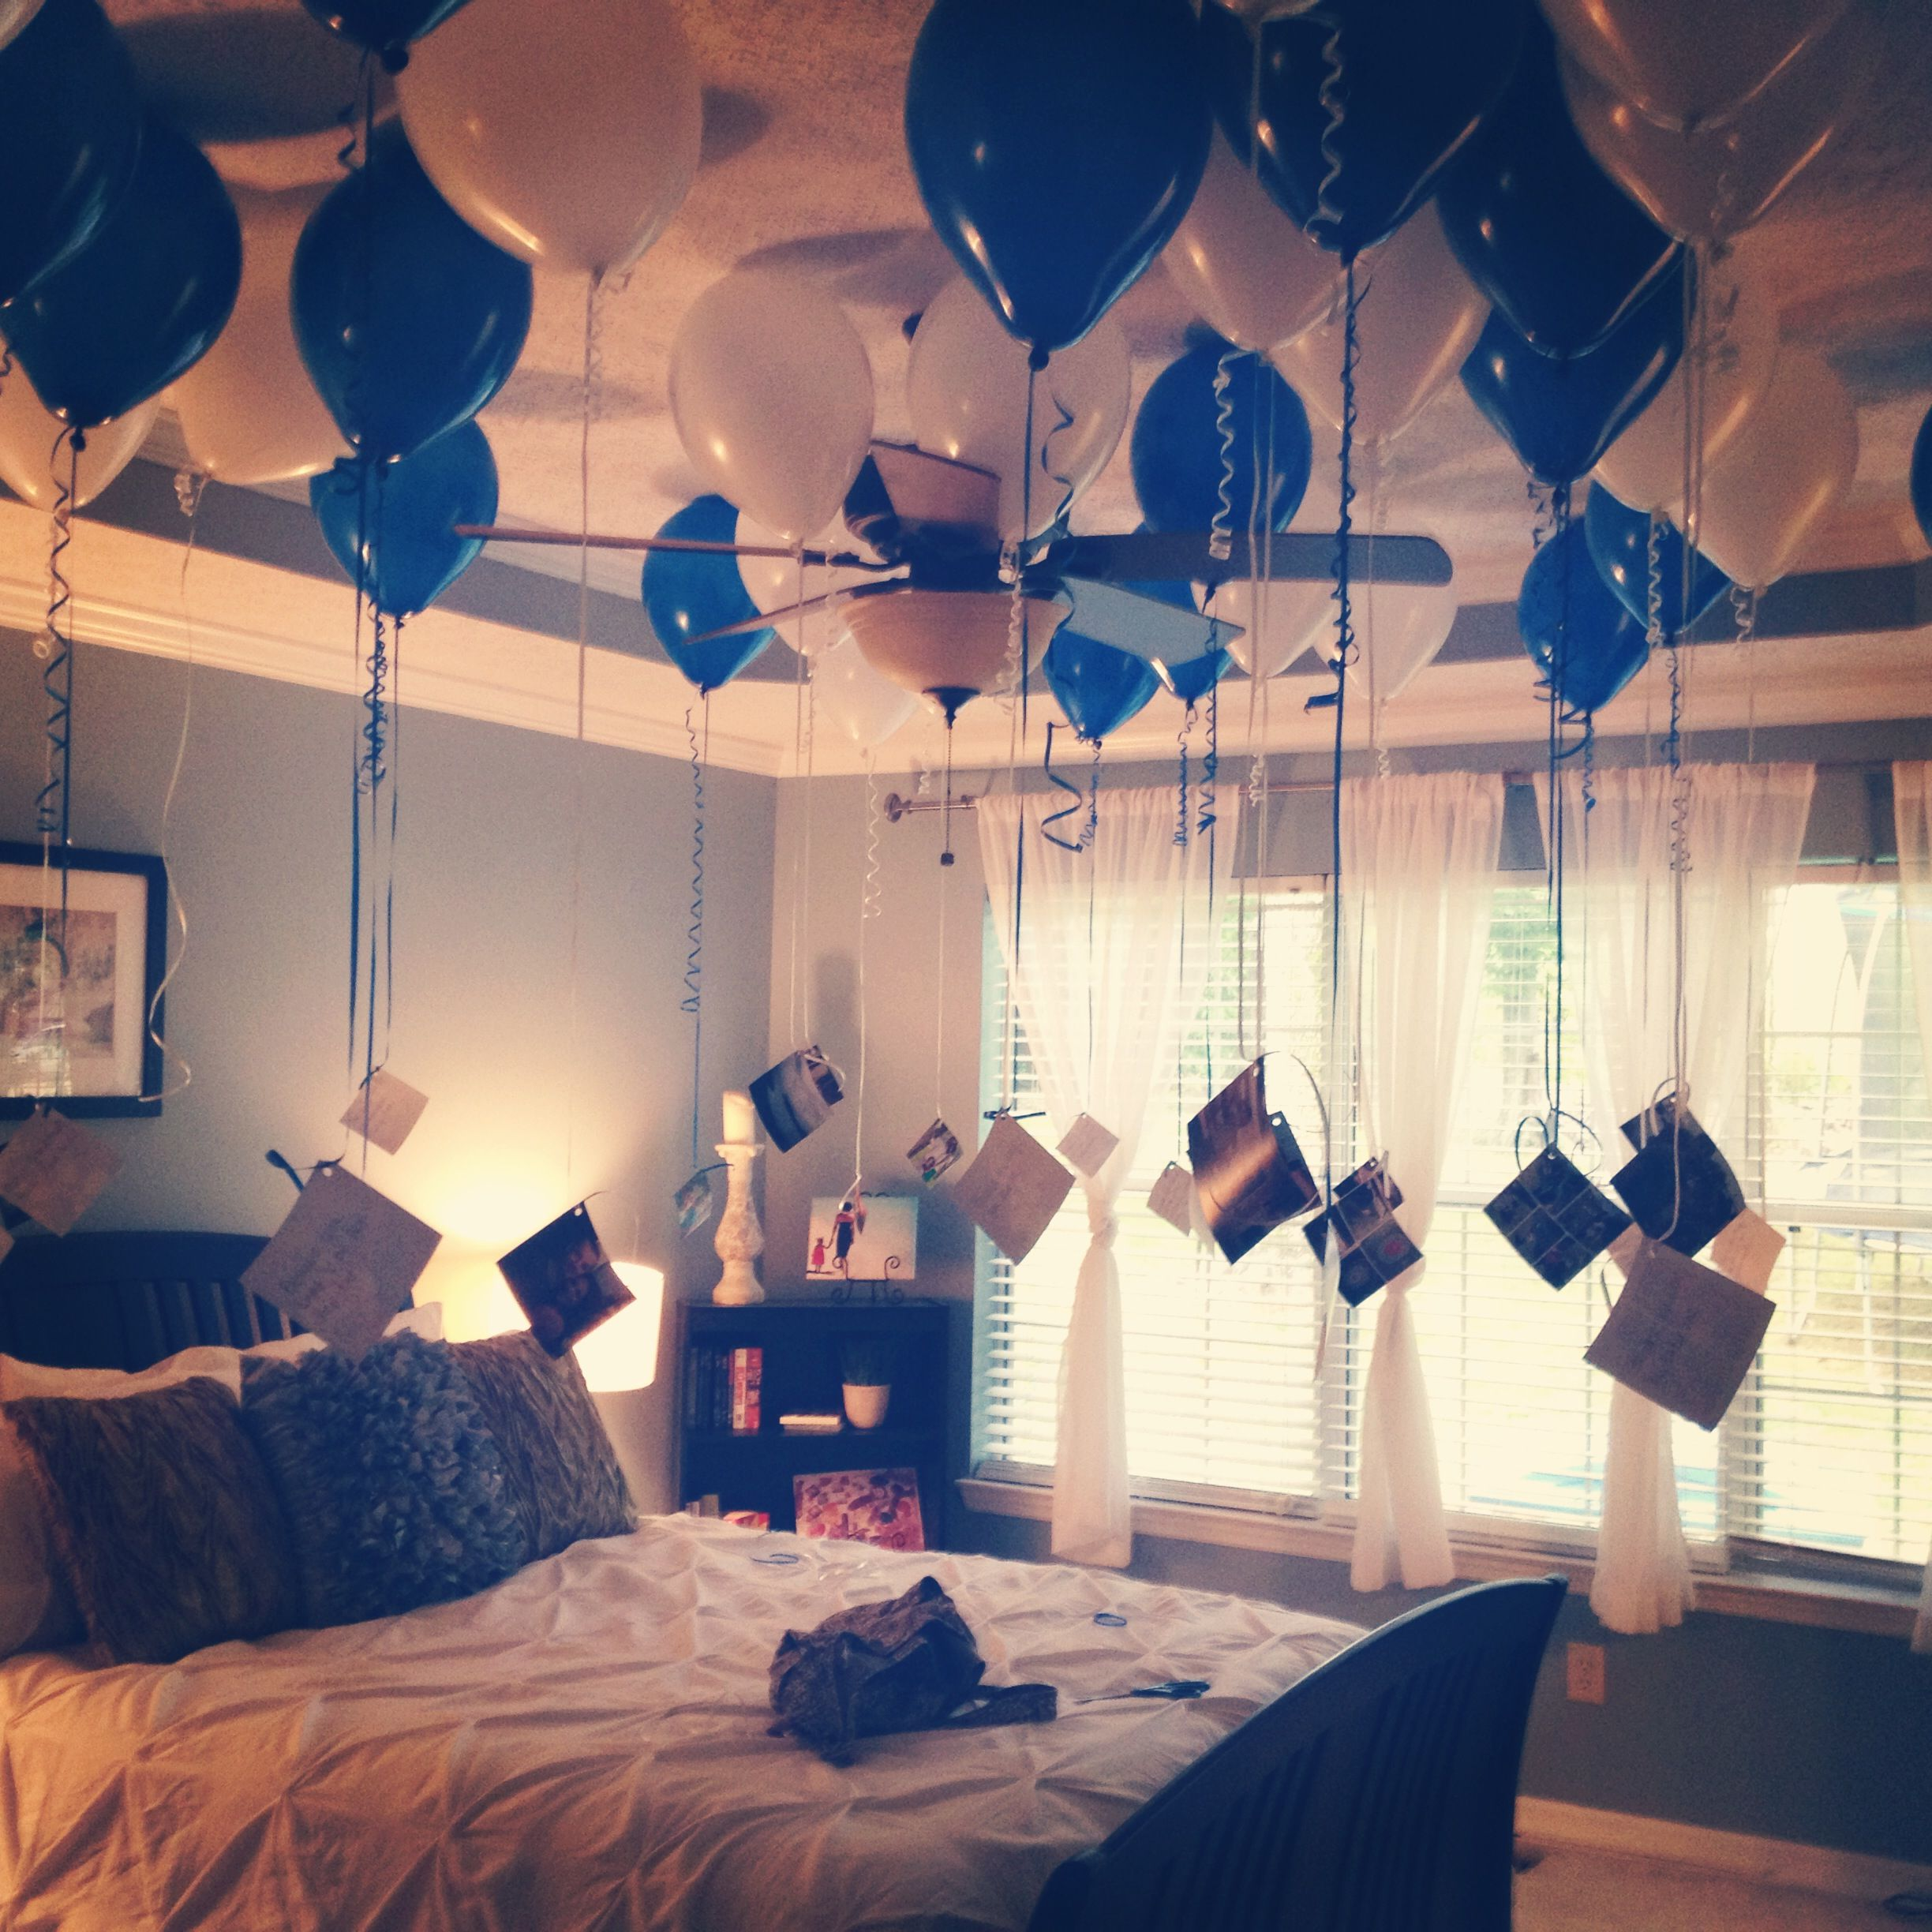 Boyfriend 39 s 35th birthday 35 balloons 35 pictures with for 35th birthday decoration ideas